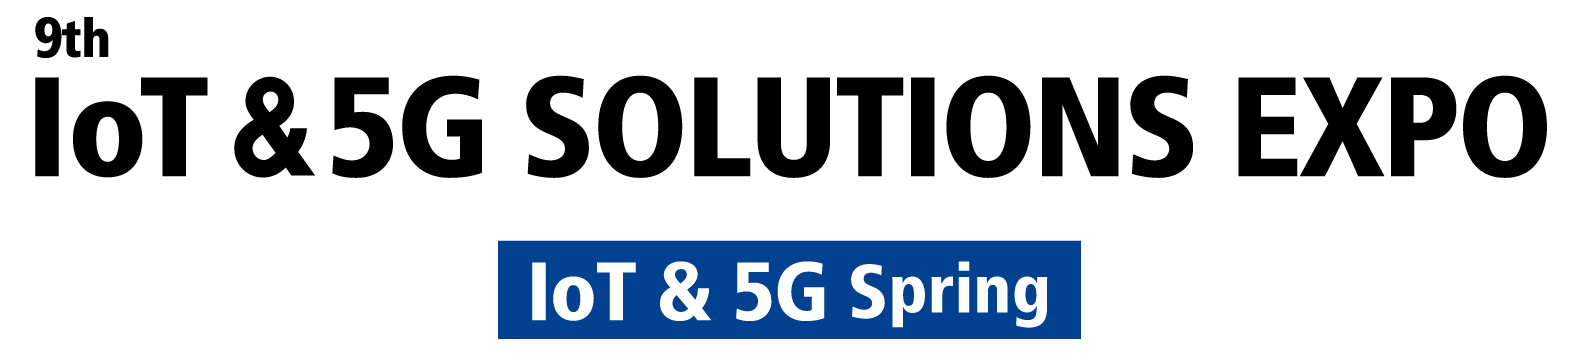 IoT & 5G Solutions Expo Spring 2020